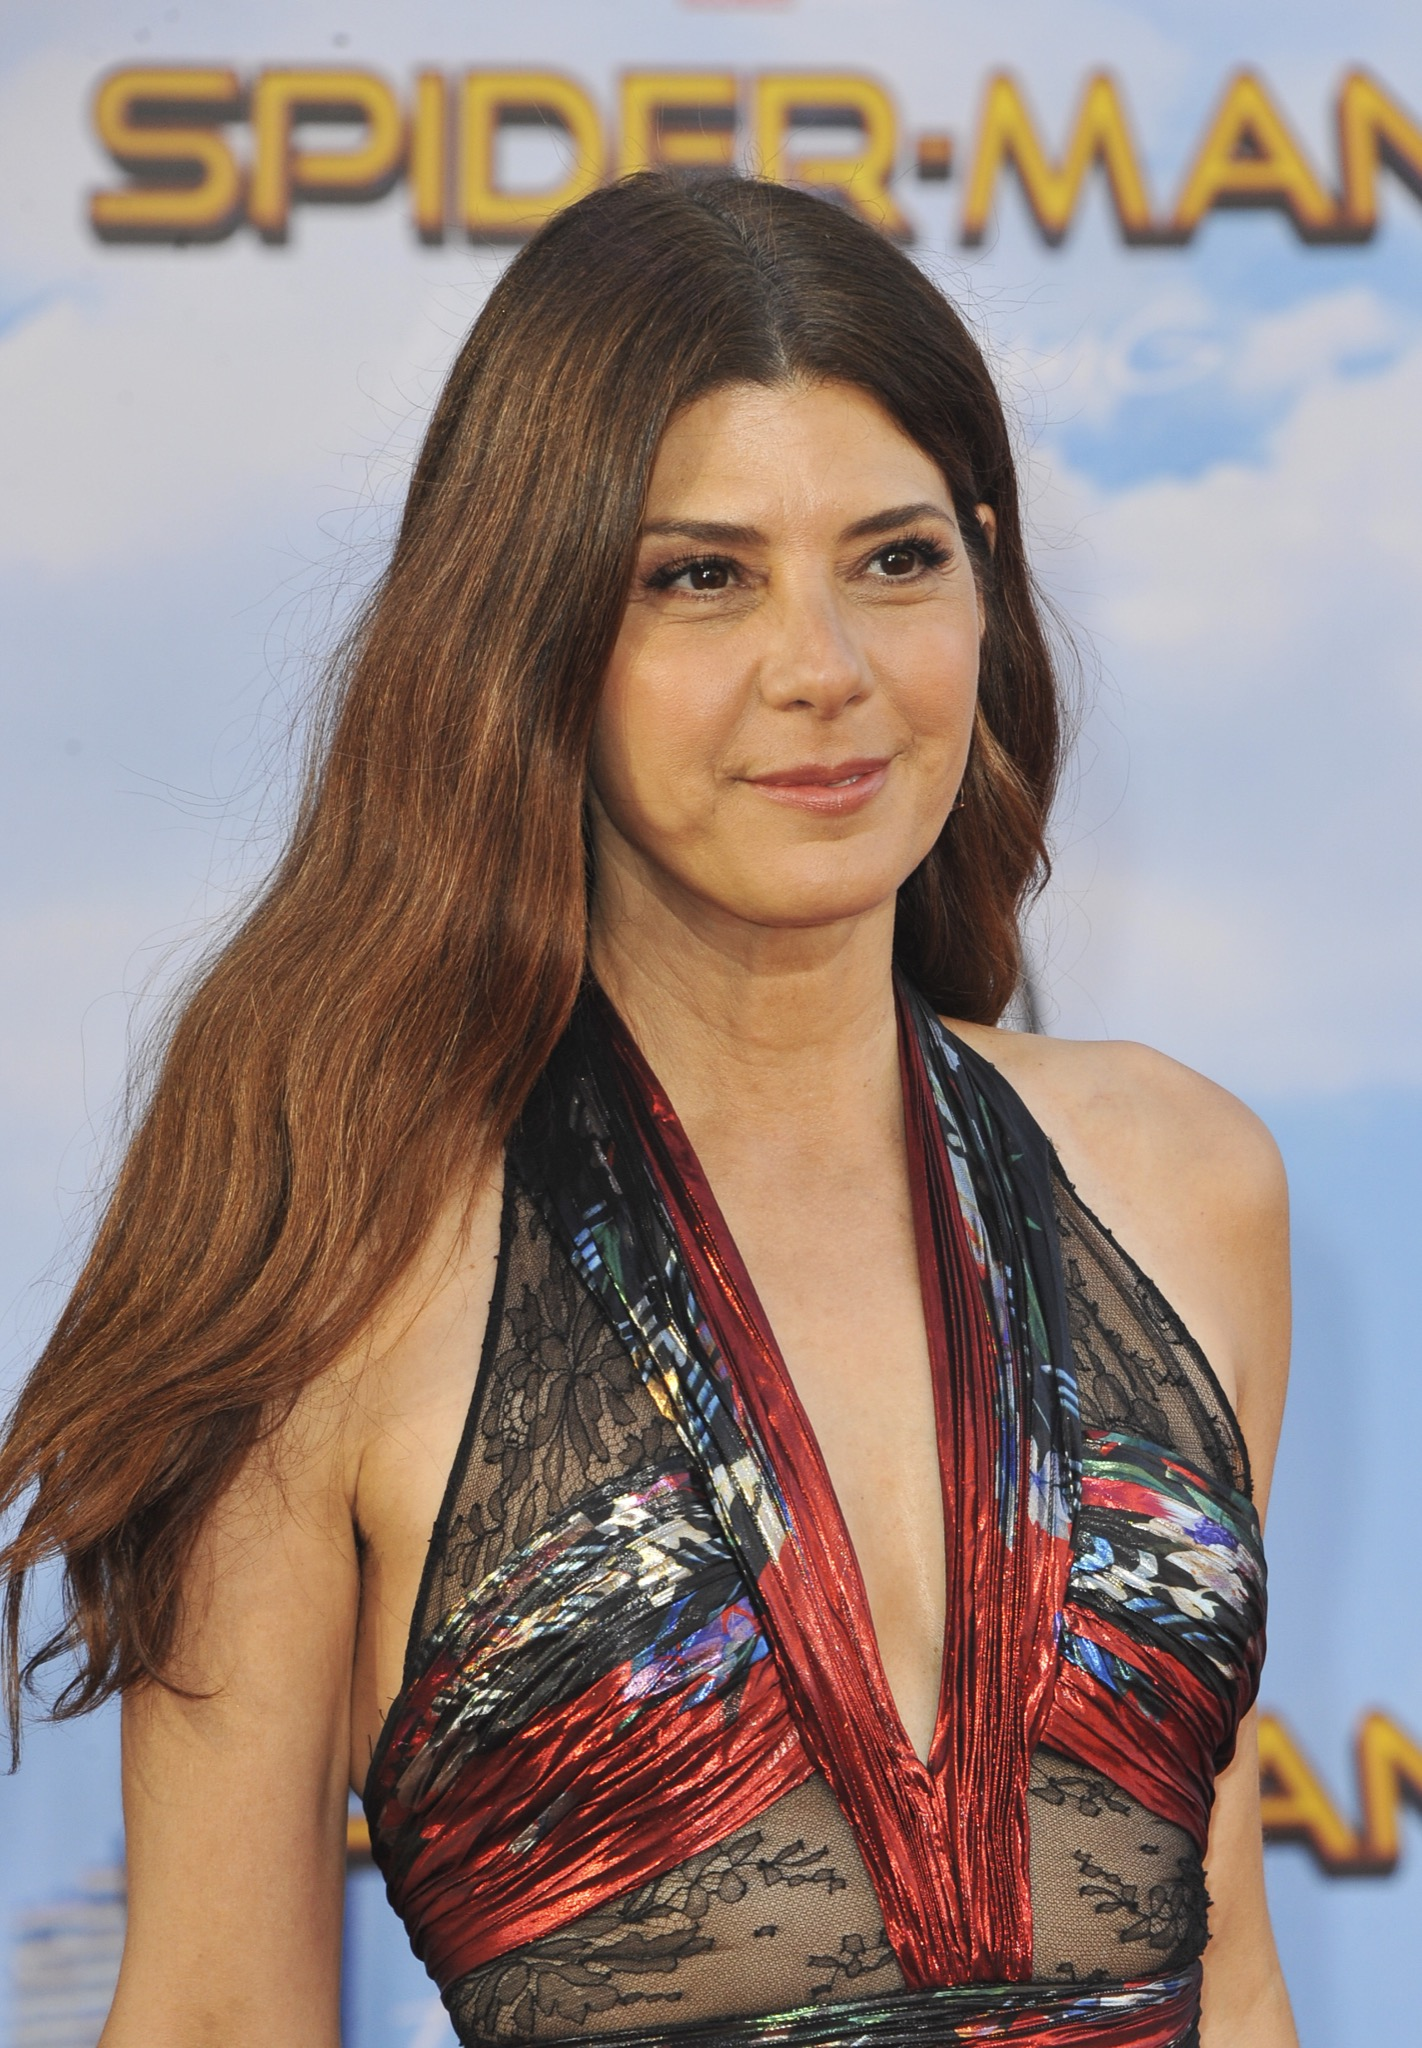 marisa tomei at Los Angeles premiere of 'Spider-Man: Homecoming'